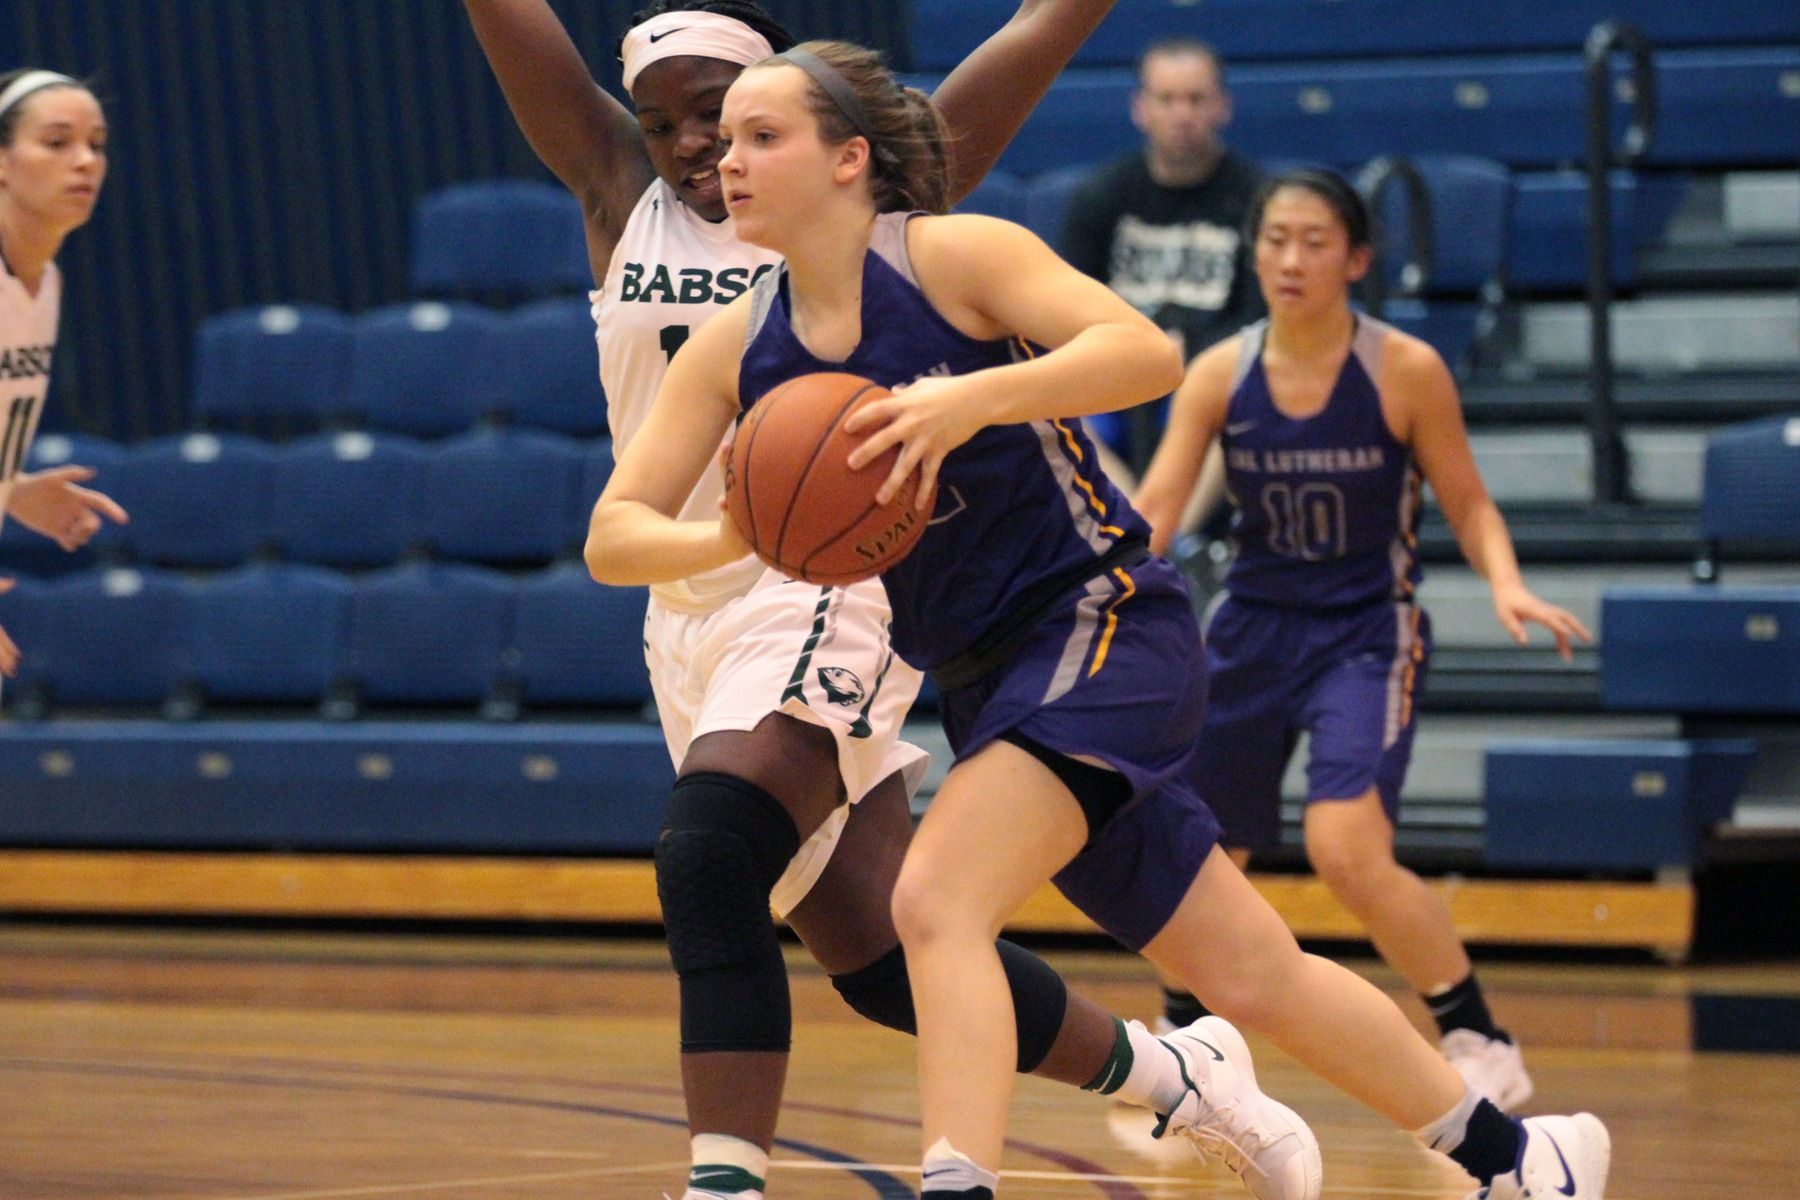 Regals Second Half Rally Comes Up Short Against Beavers